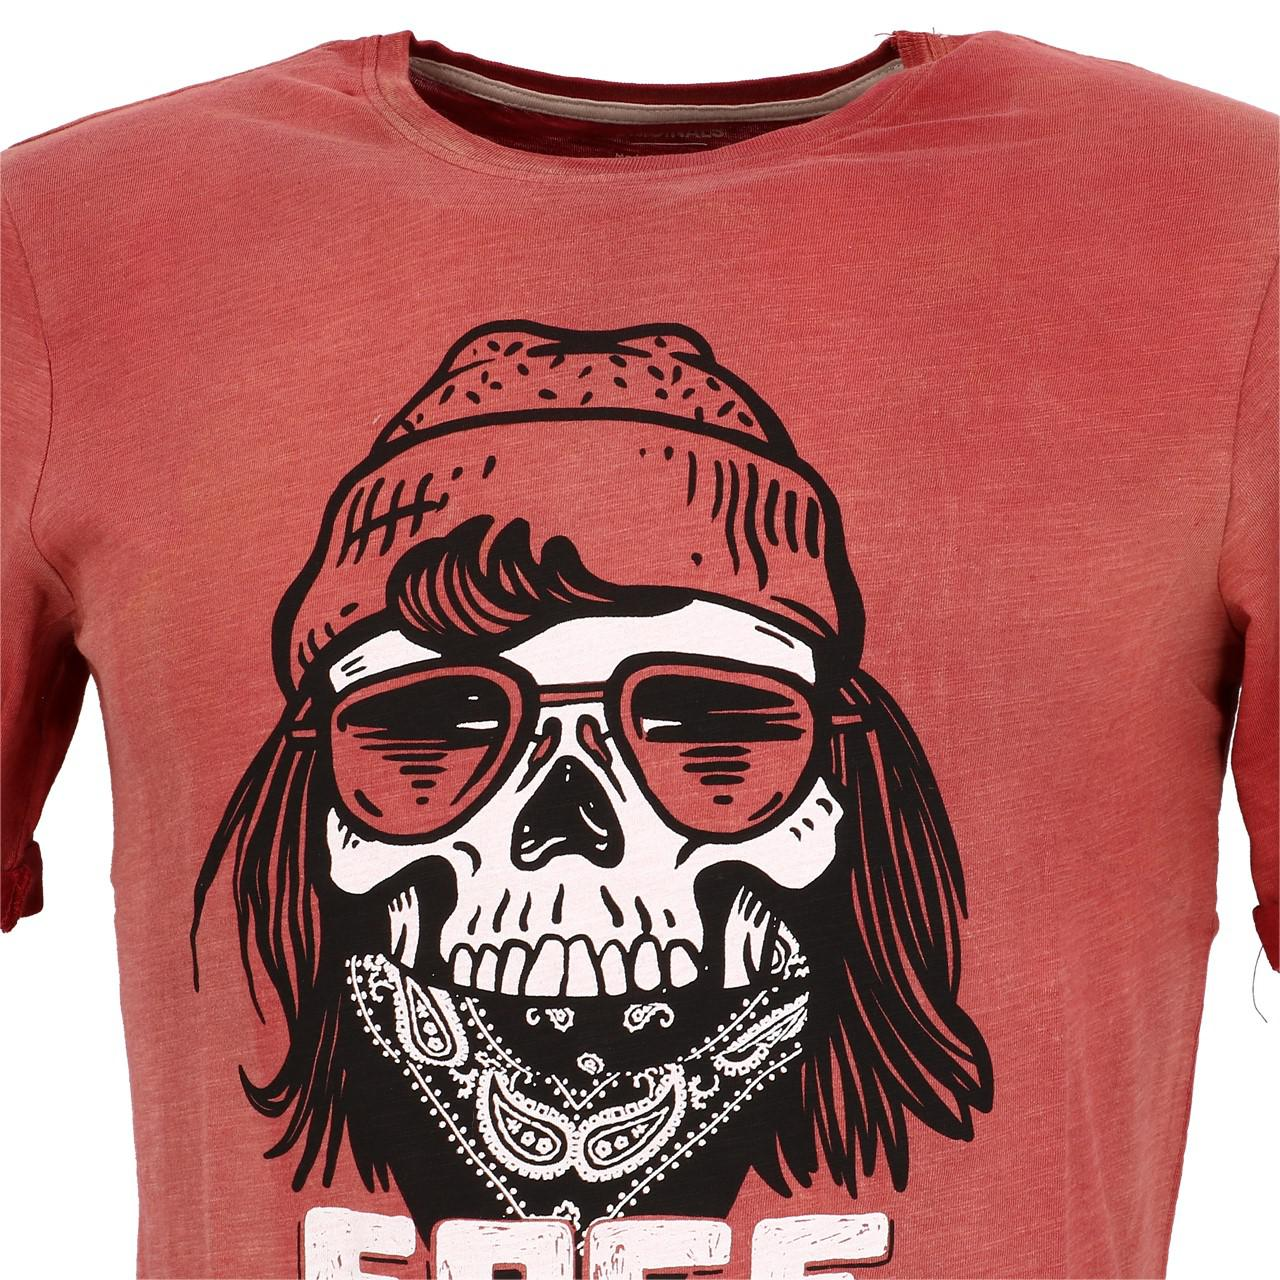 Short-Sleeve-T-Shirt-Jack-and-Jones-Craps-Brick-Red-Mc-Tee-Red-28384-Does-Not thumbnail 2